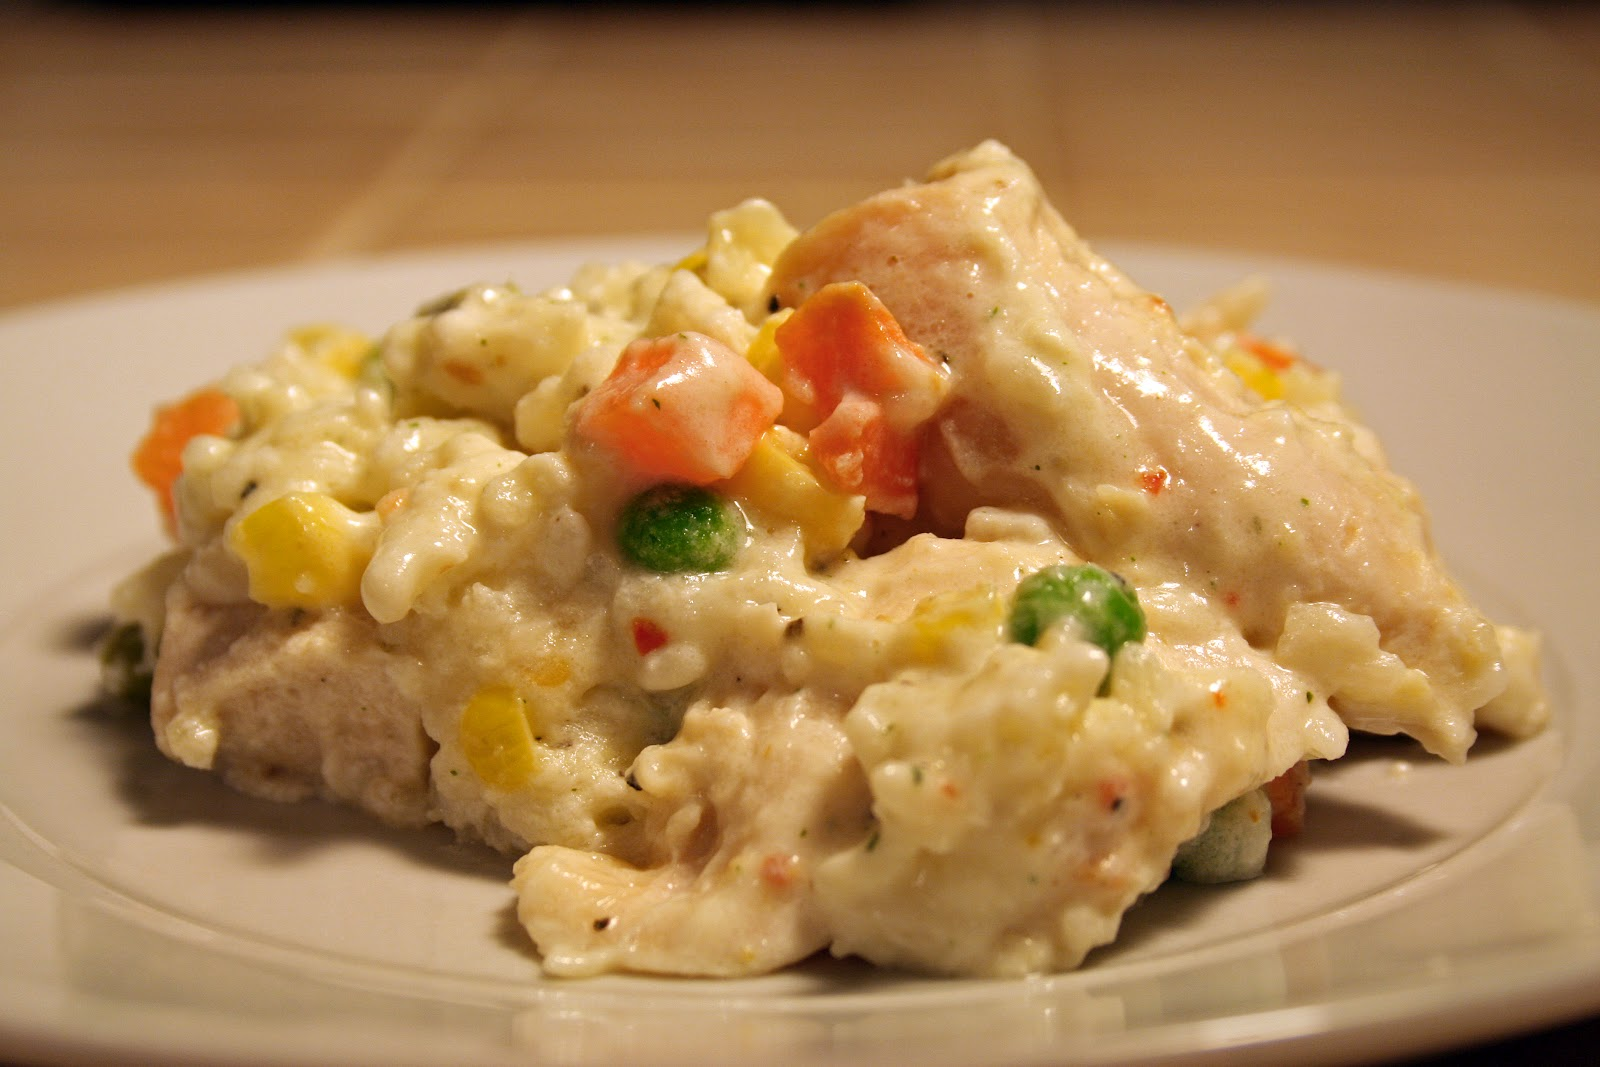 Lazy Gluten Free: Chicken & Rice Casserole